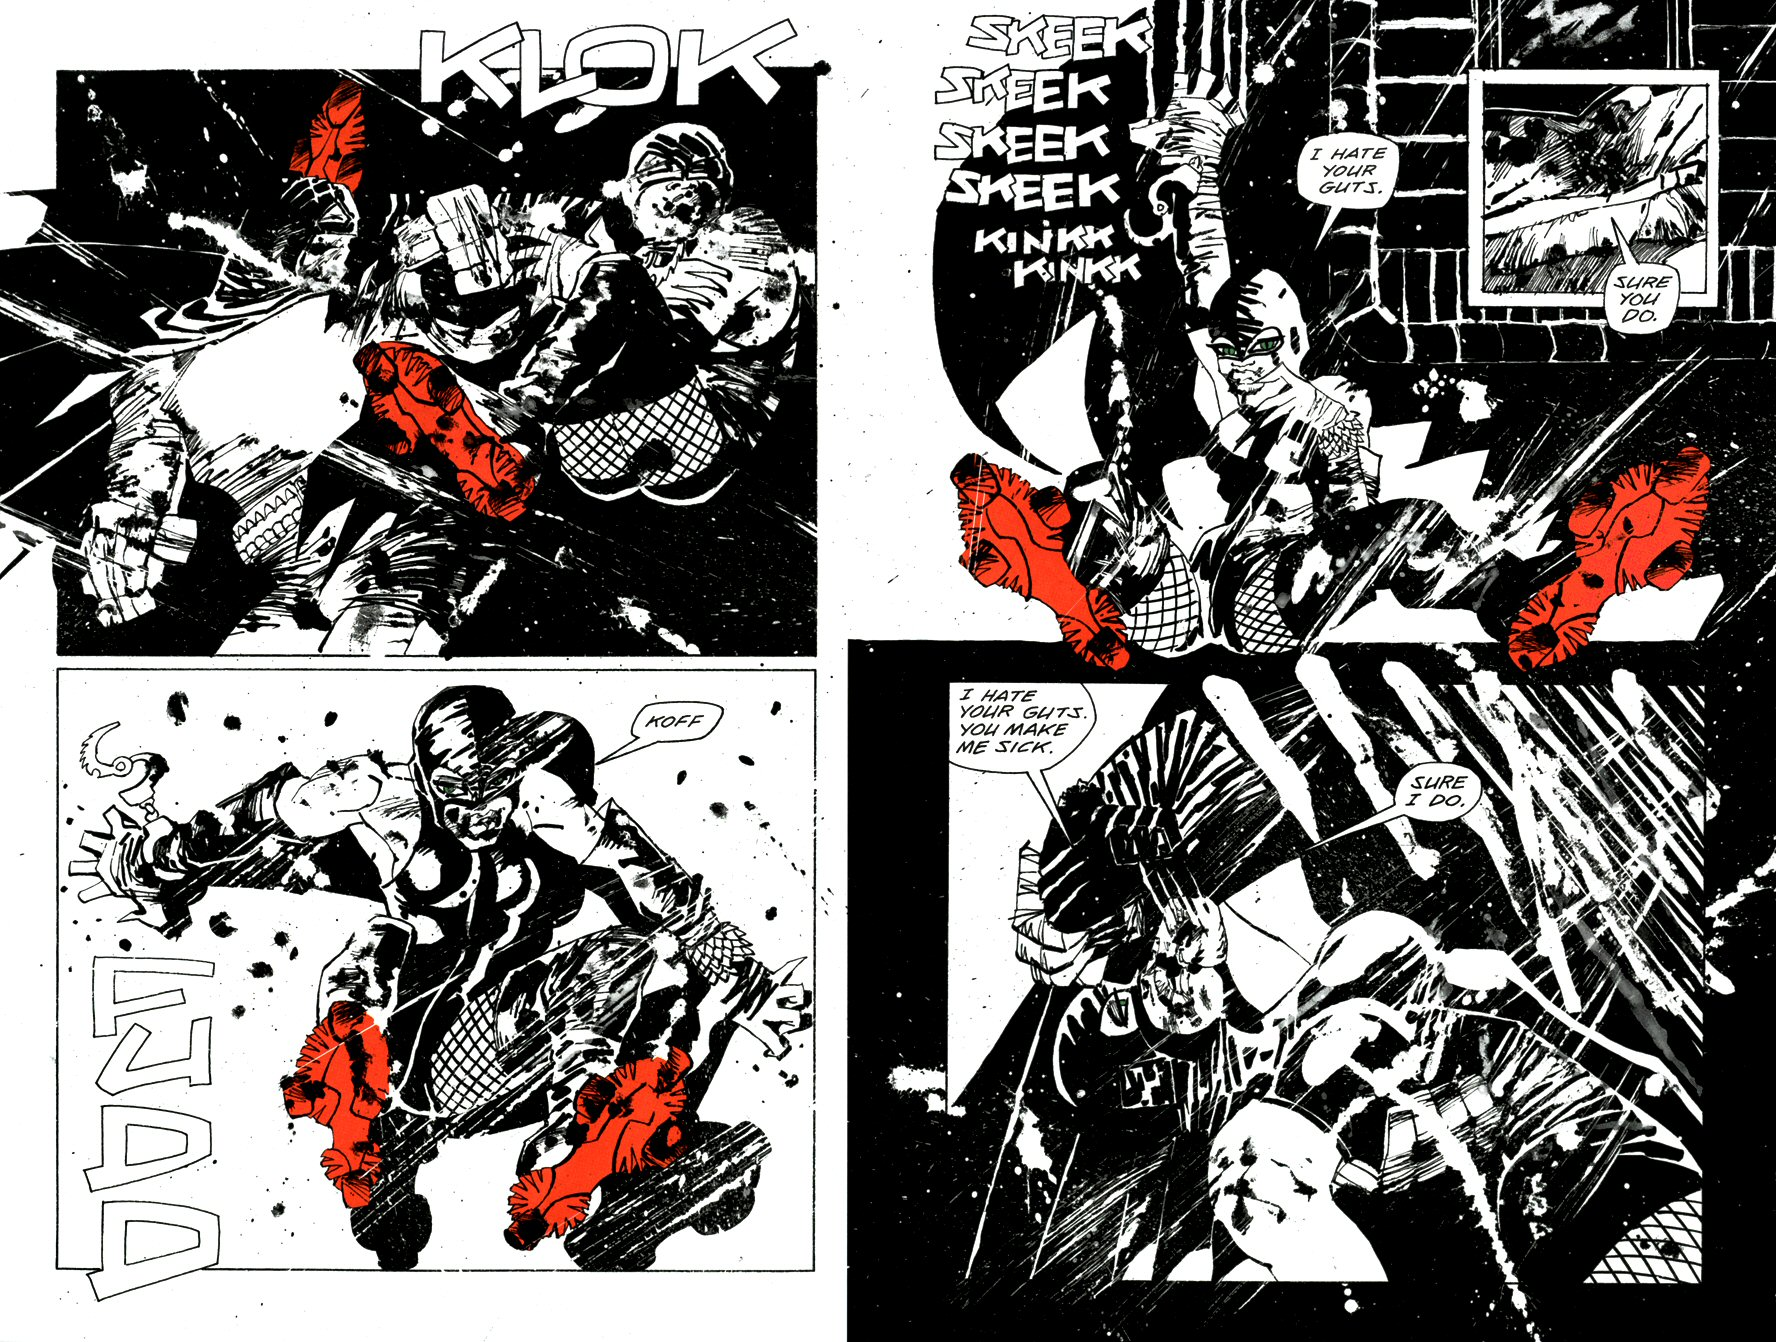 Read online Frank Miller's Holy Terror comic -  Issue # TPB - 29